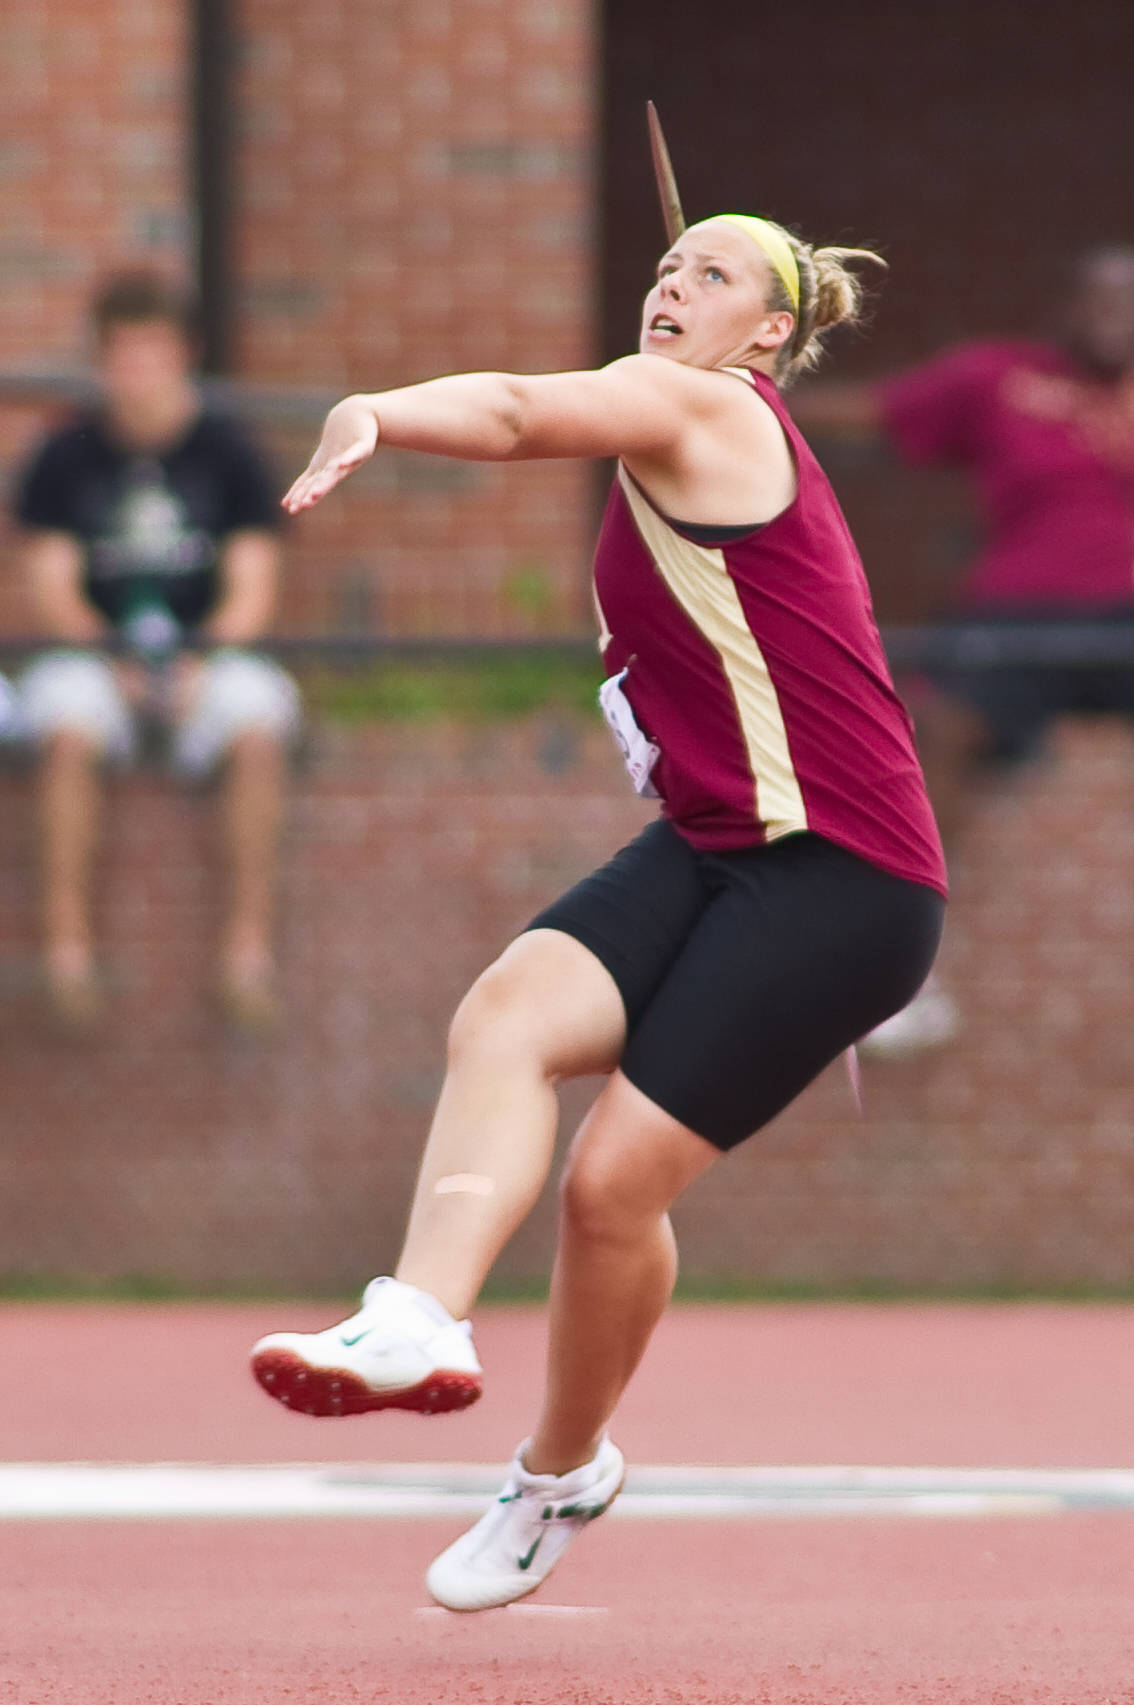 Chelsea Whalen, a sophomore from Florida State, prepares to cut loose in the javelin.